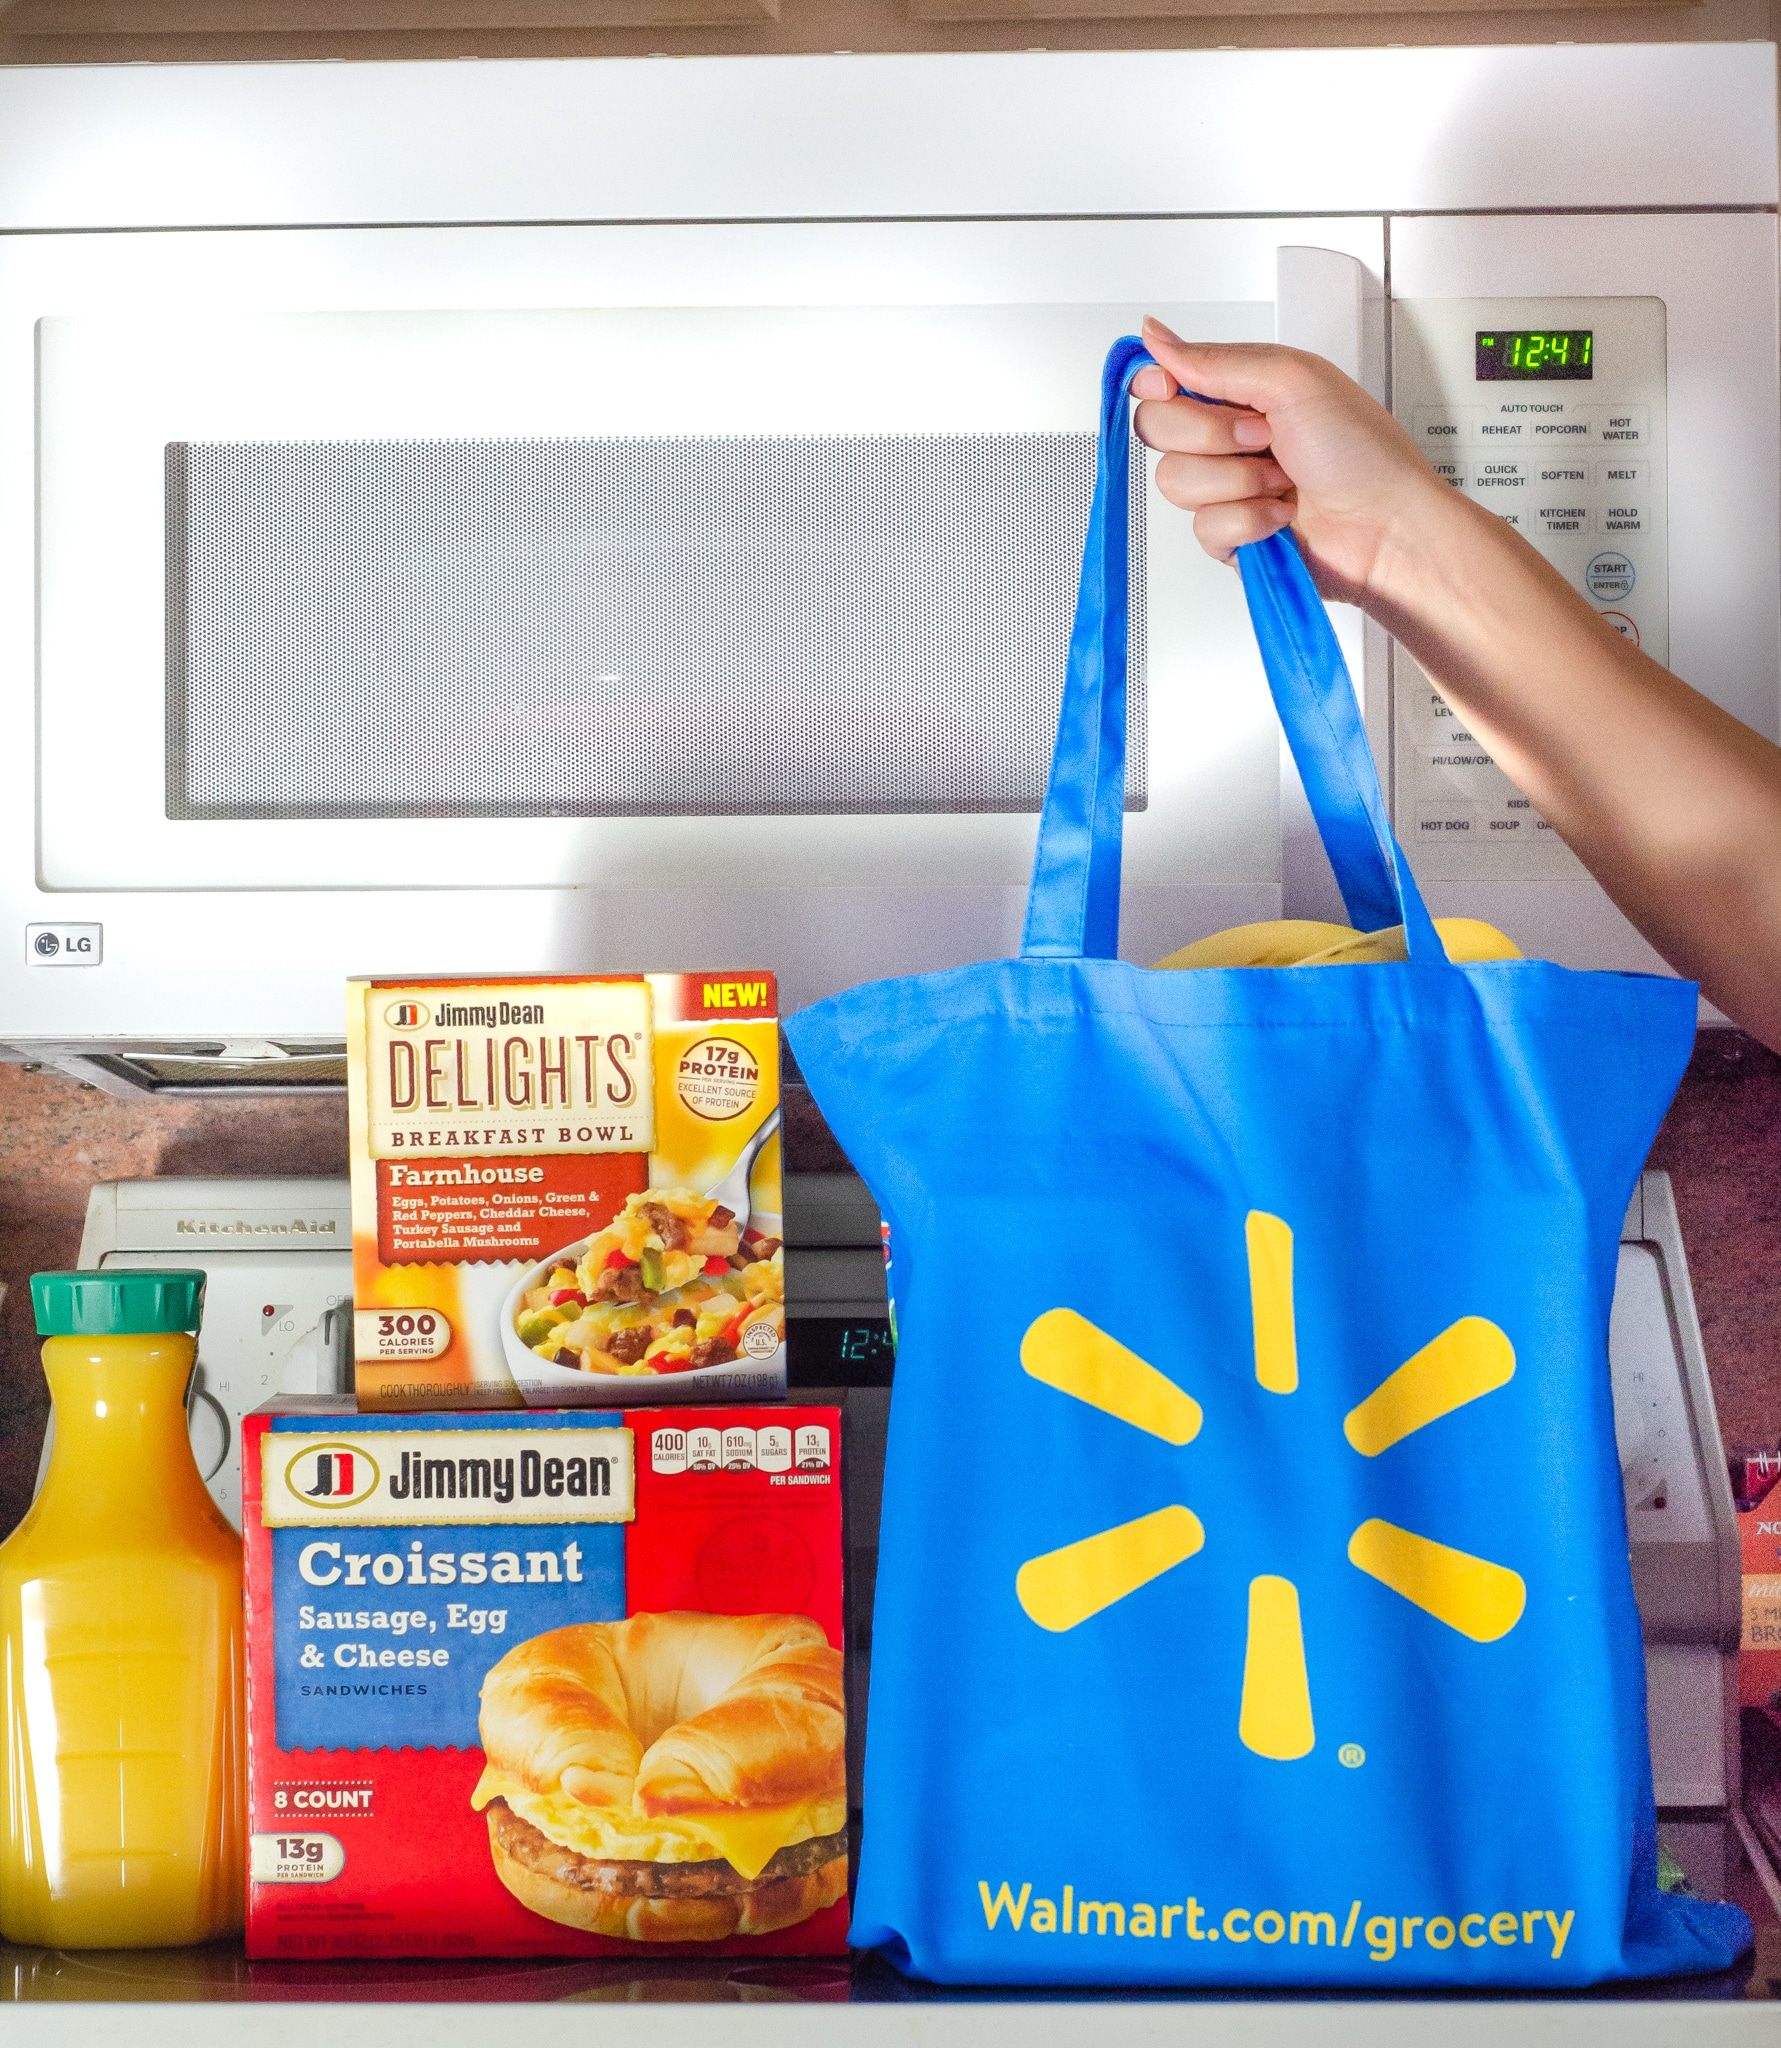 Jimmy Dean Walmart Shopable. Start your mornings off right with my 5 Stress-Free Breakfast Ideas featuring some of our favorite ways to start our day.